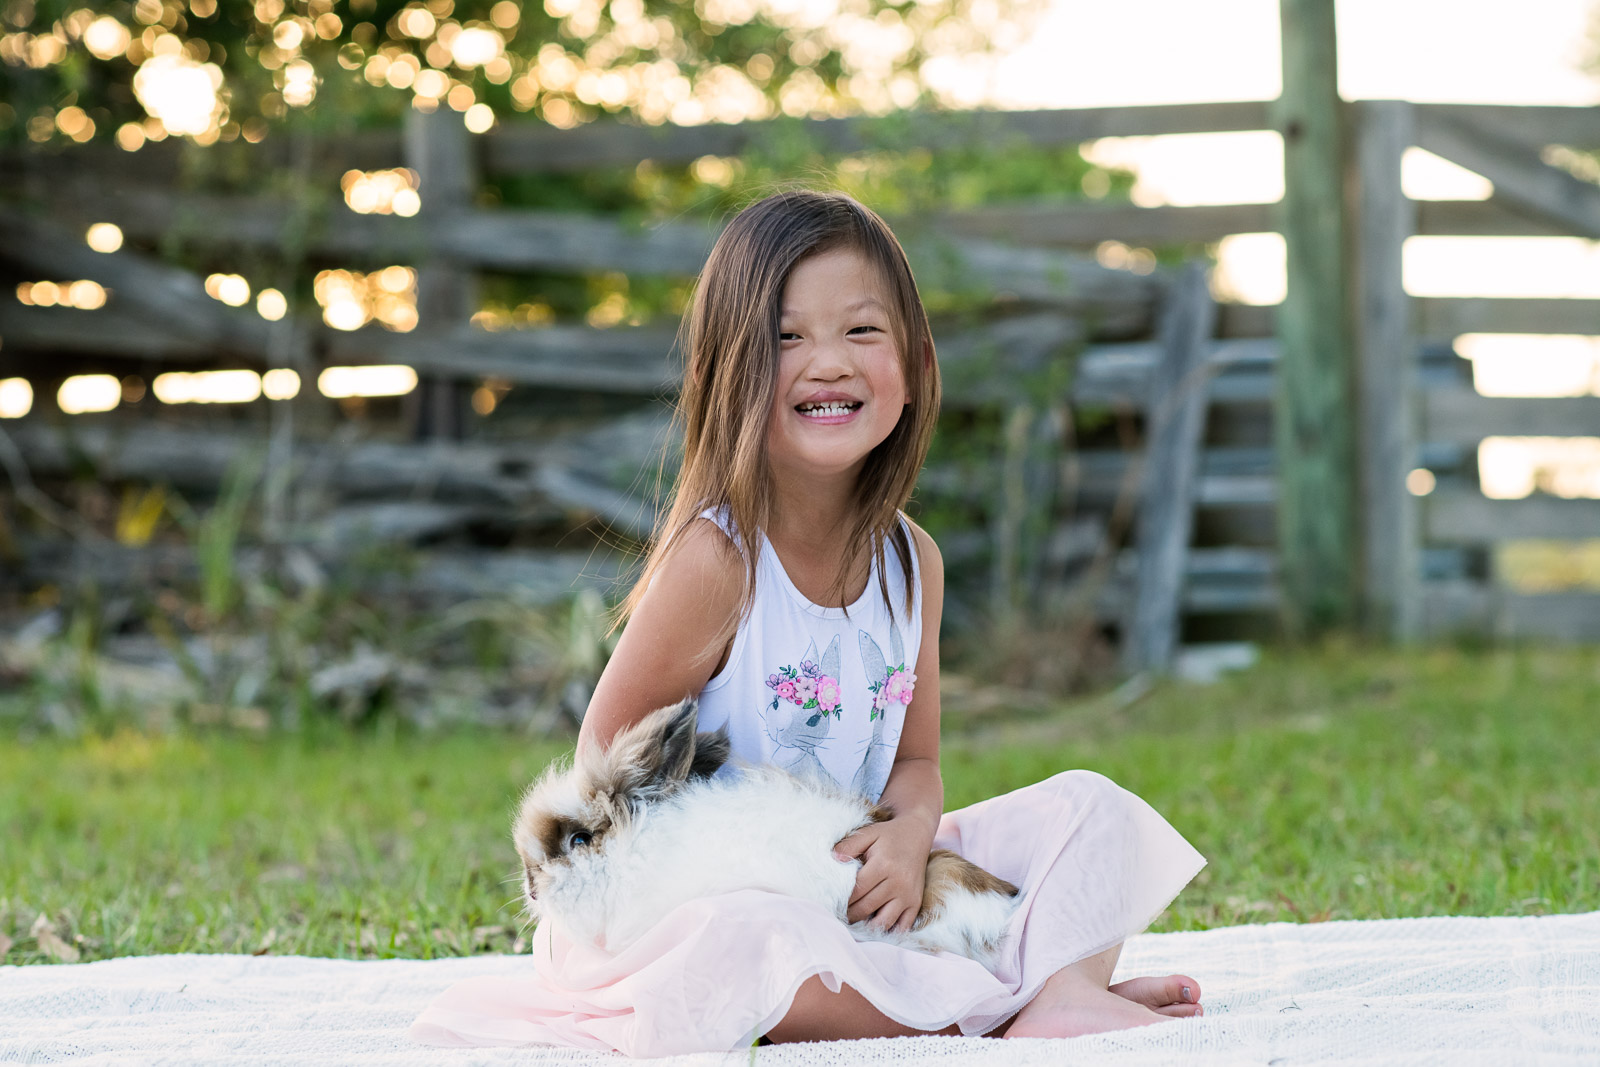 spring-photo-sessions-with-animals-vero-beach-01-5.jpg